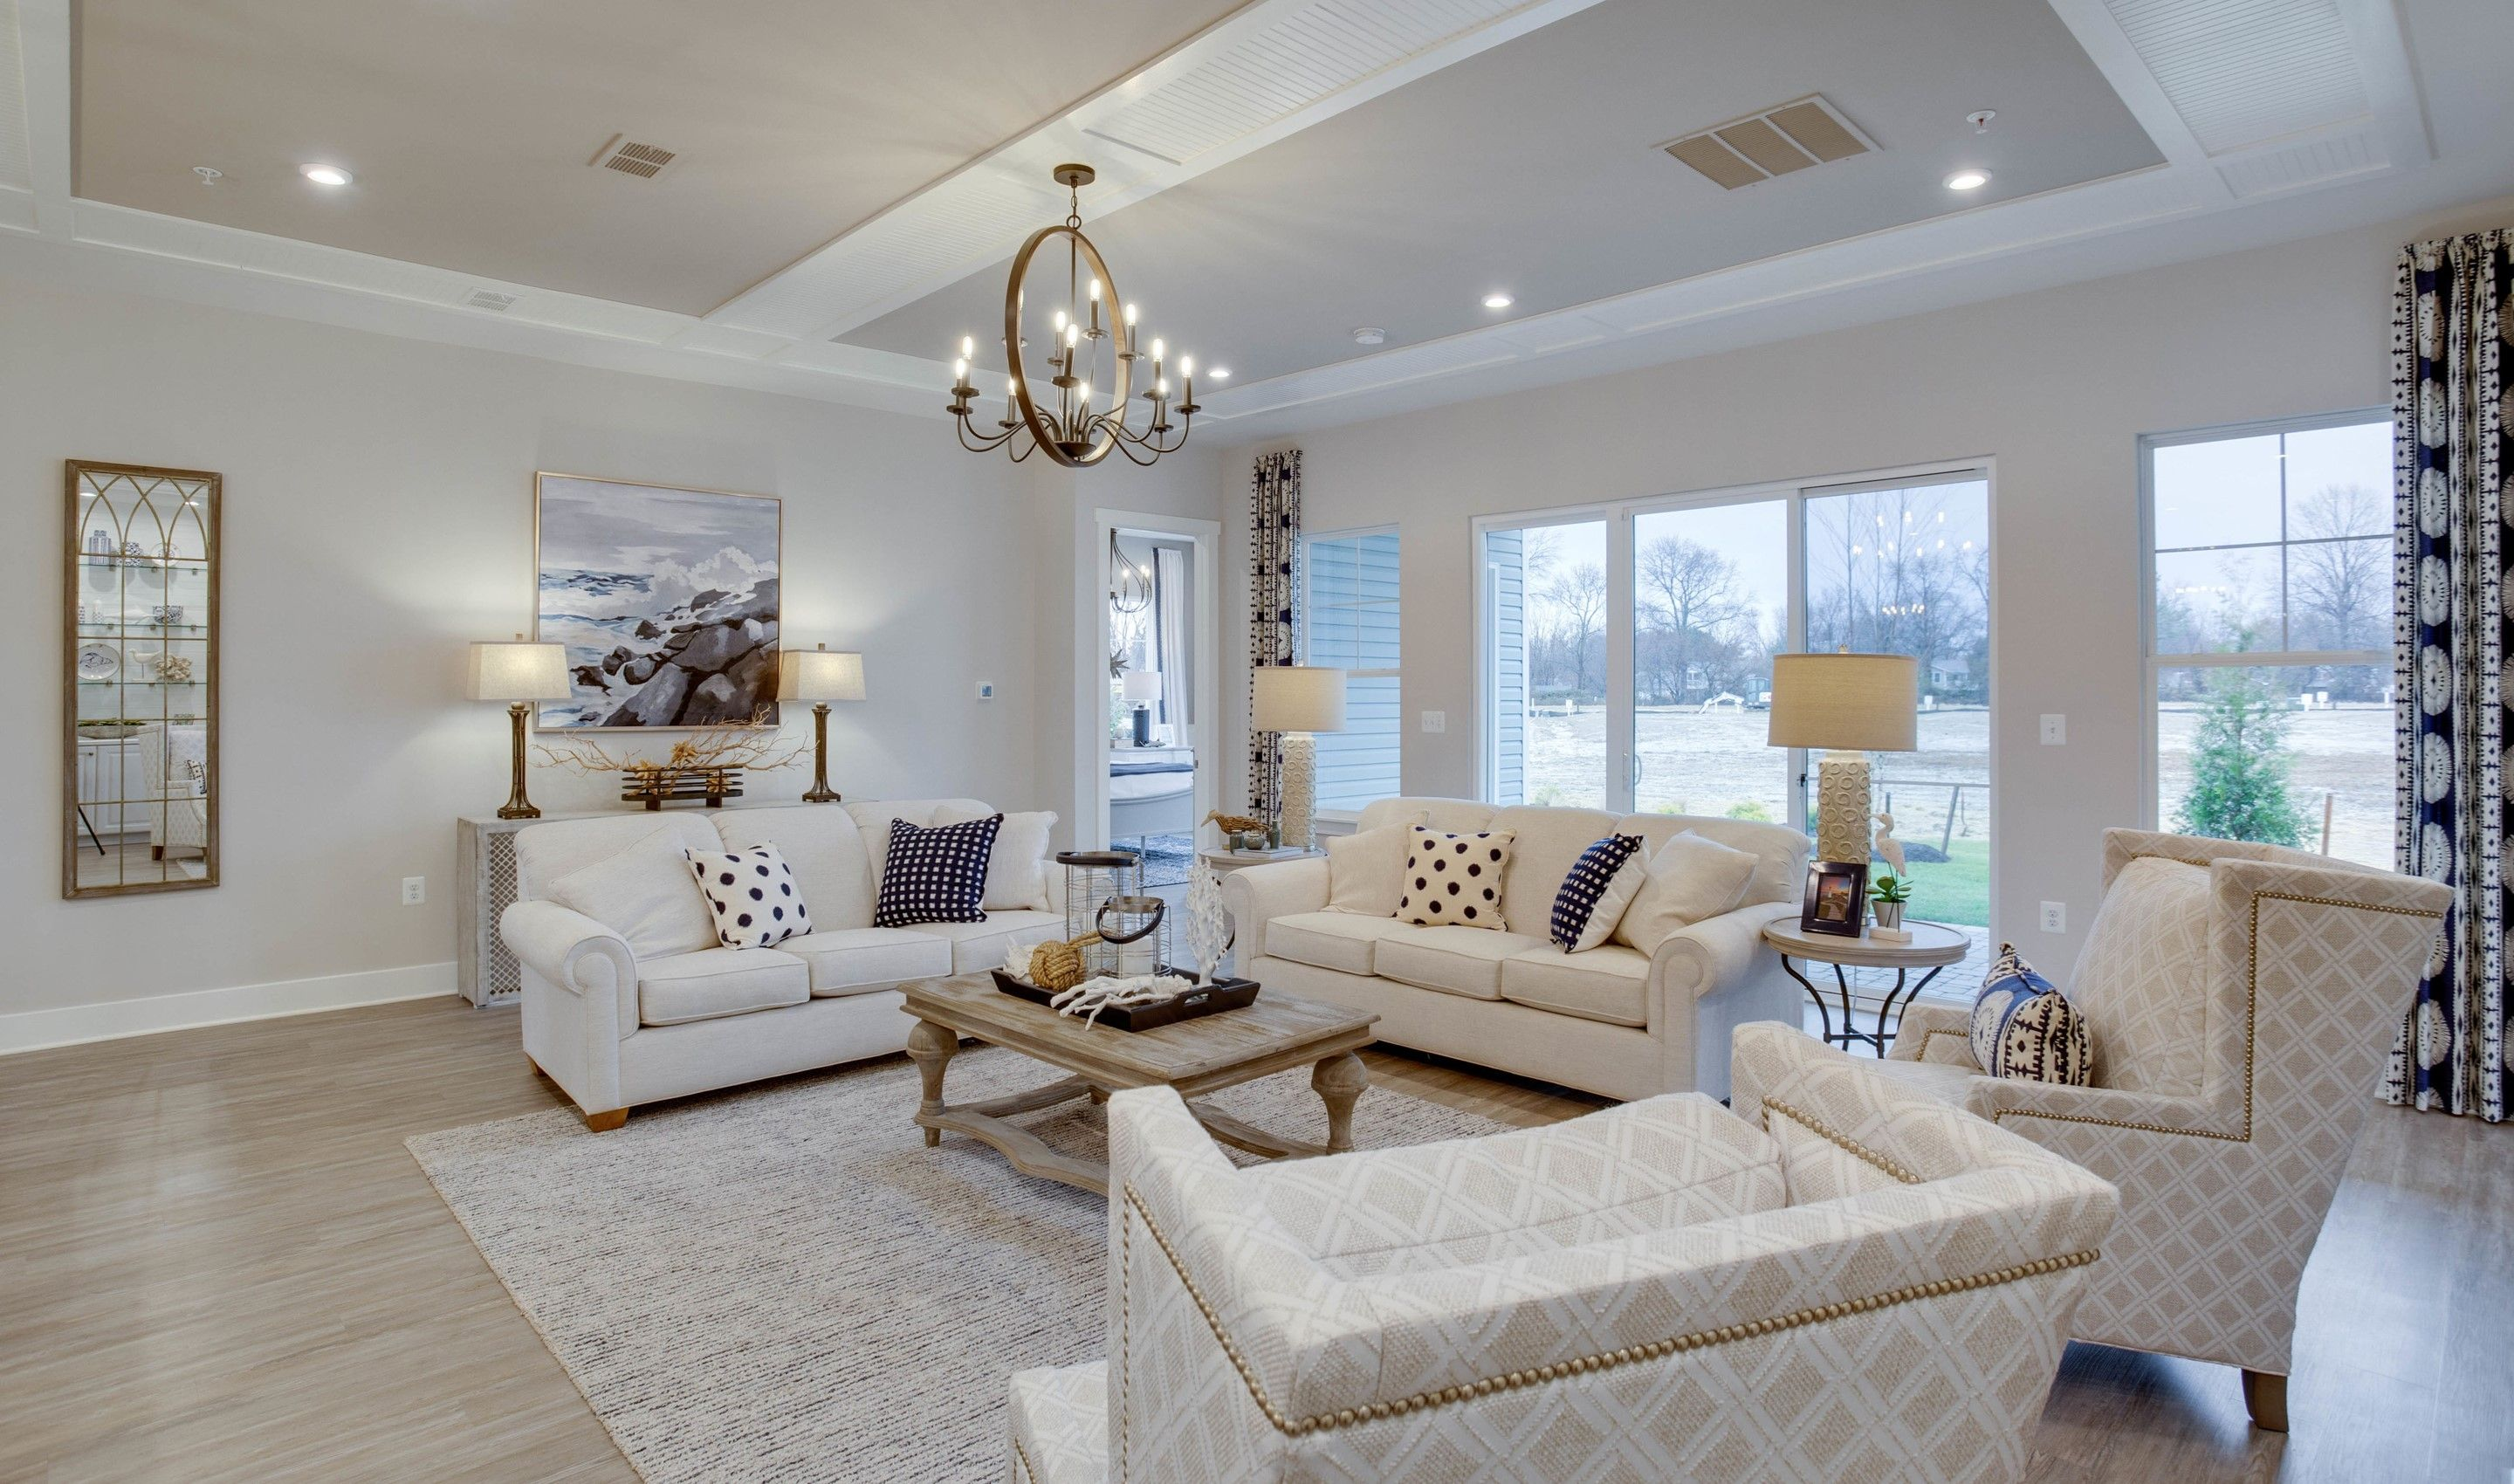 Living Area featured in the Santorini By K. Hovnanian's® Four Seasons in Eastern Shore, MD